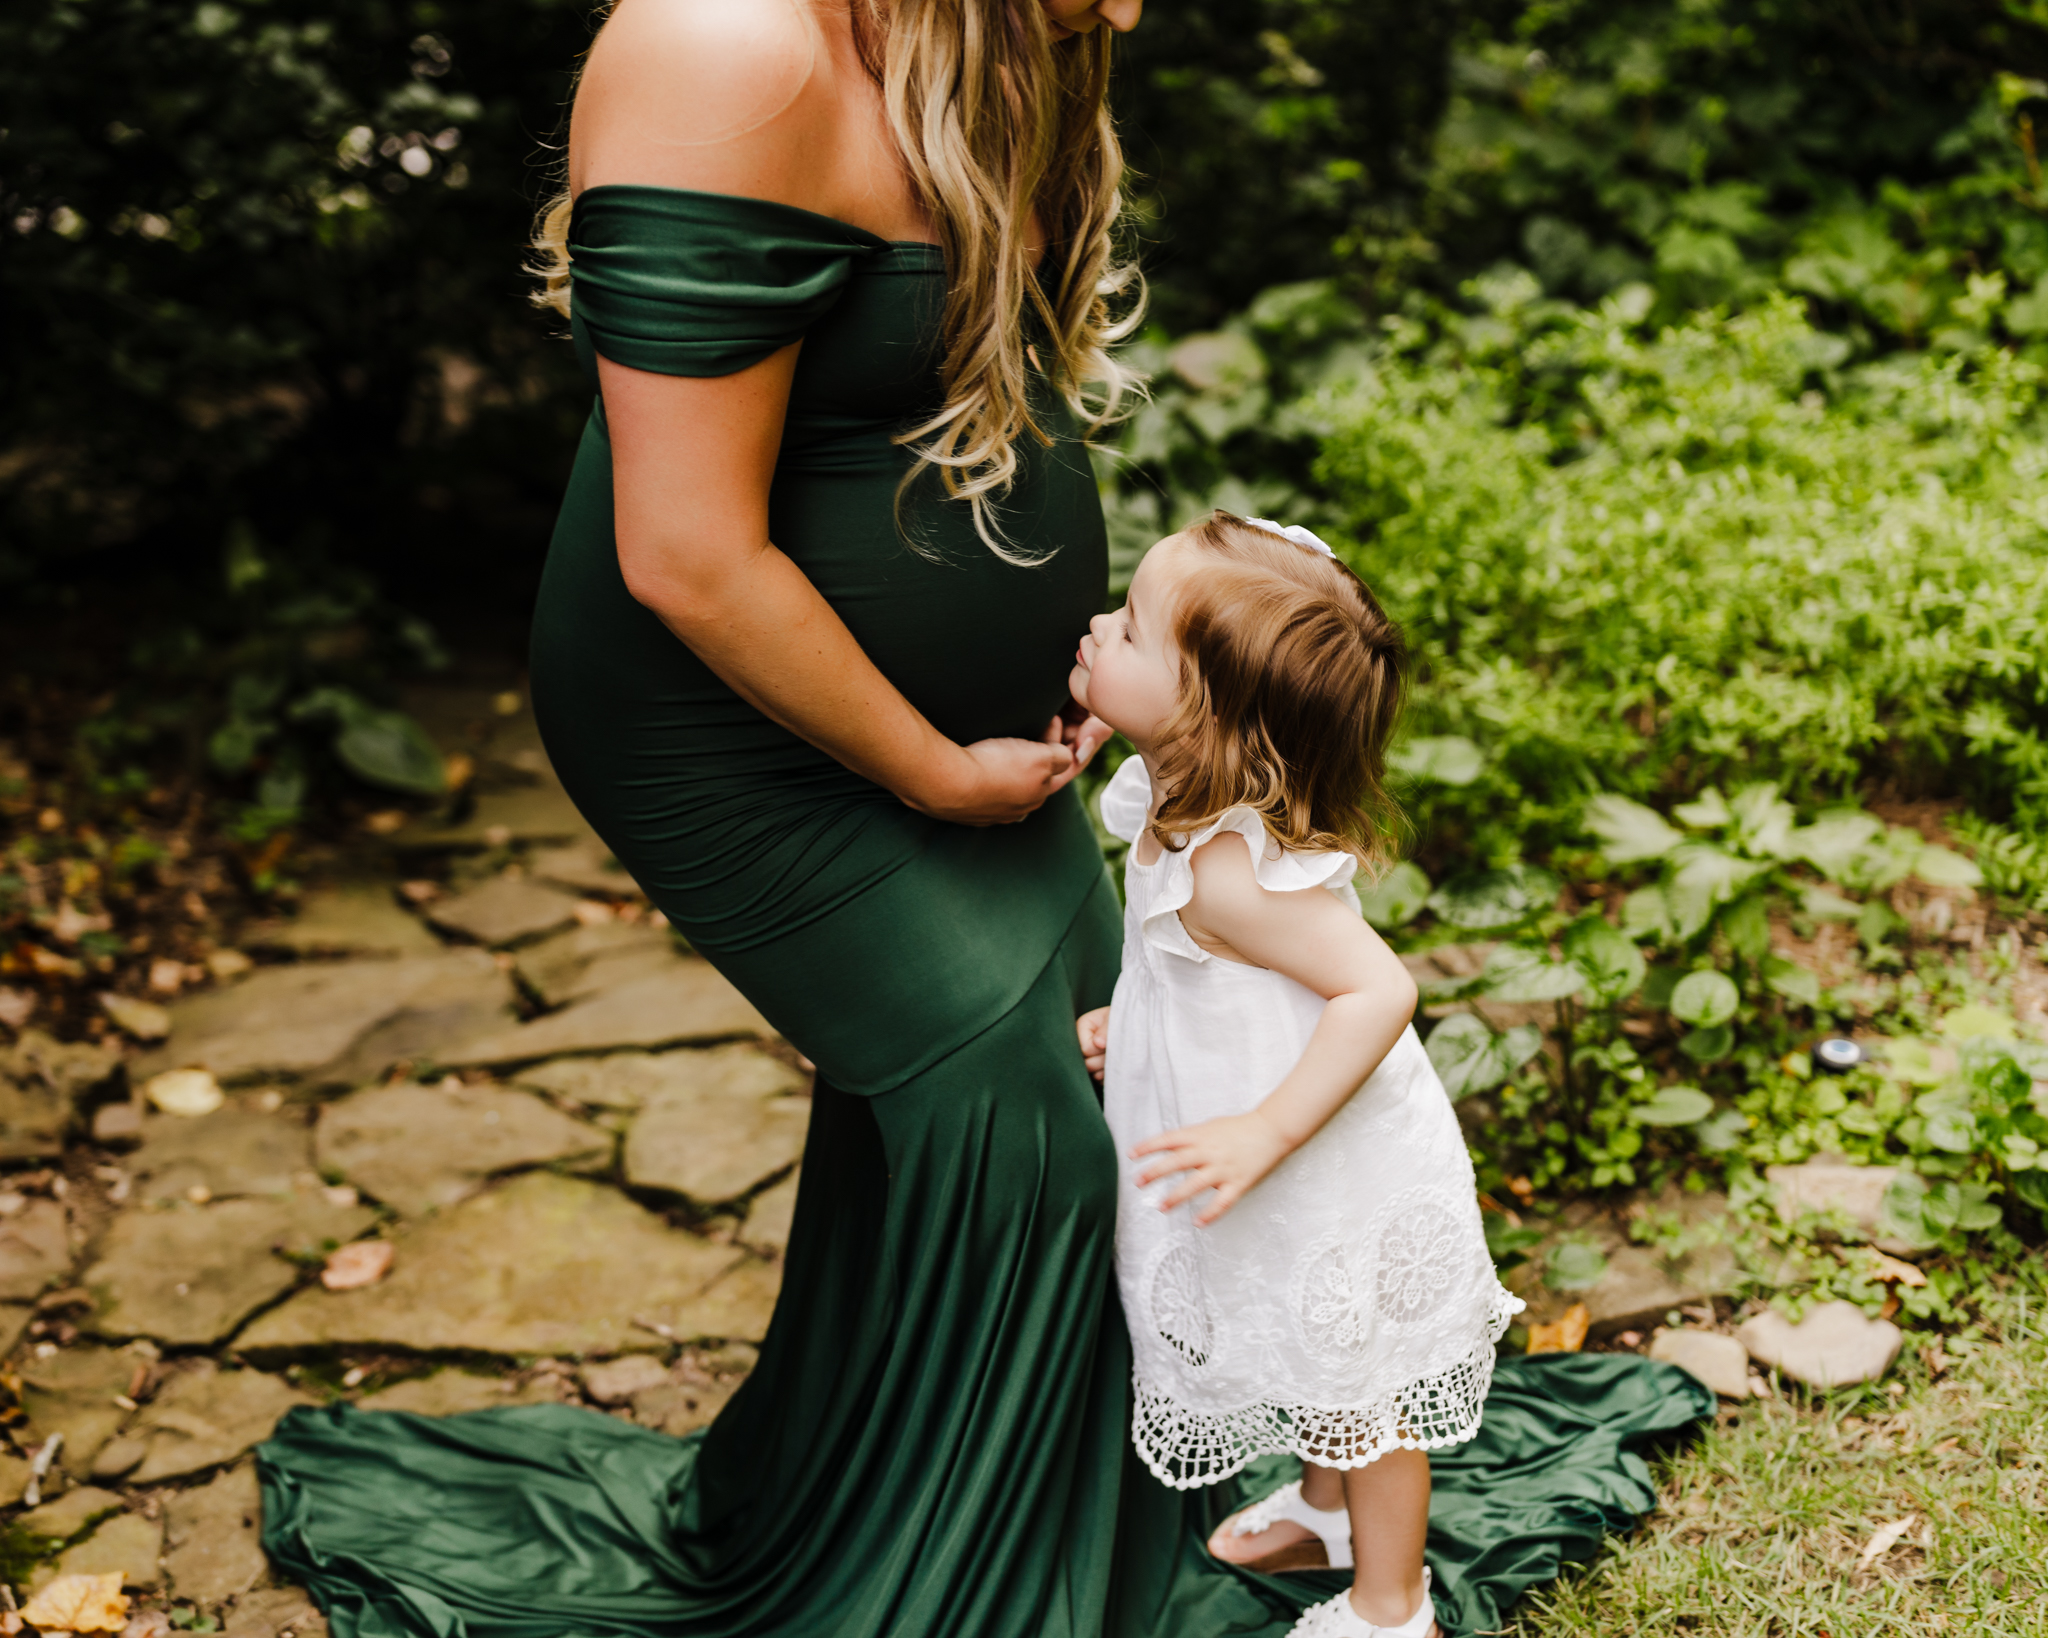 pregnant woman in green dress leaning over for her daughter to kiss her belly in wooded area